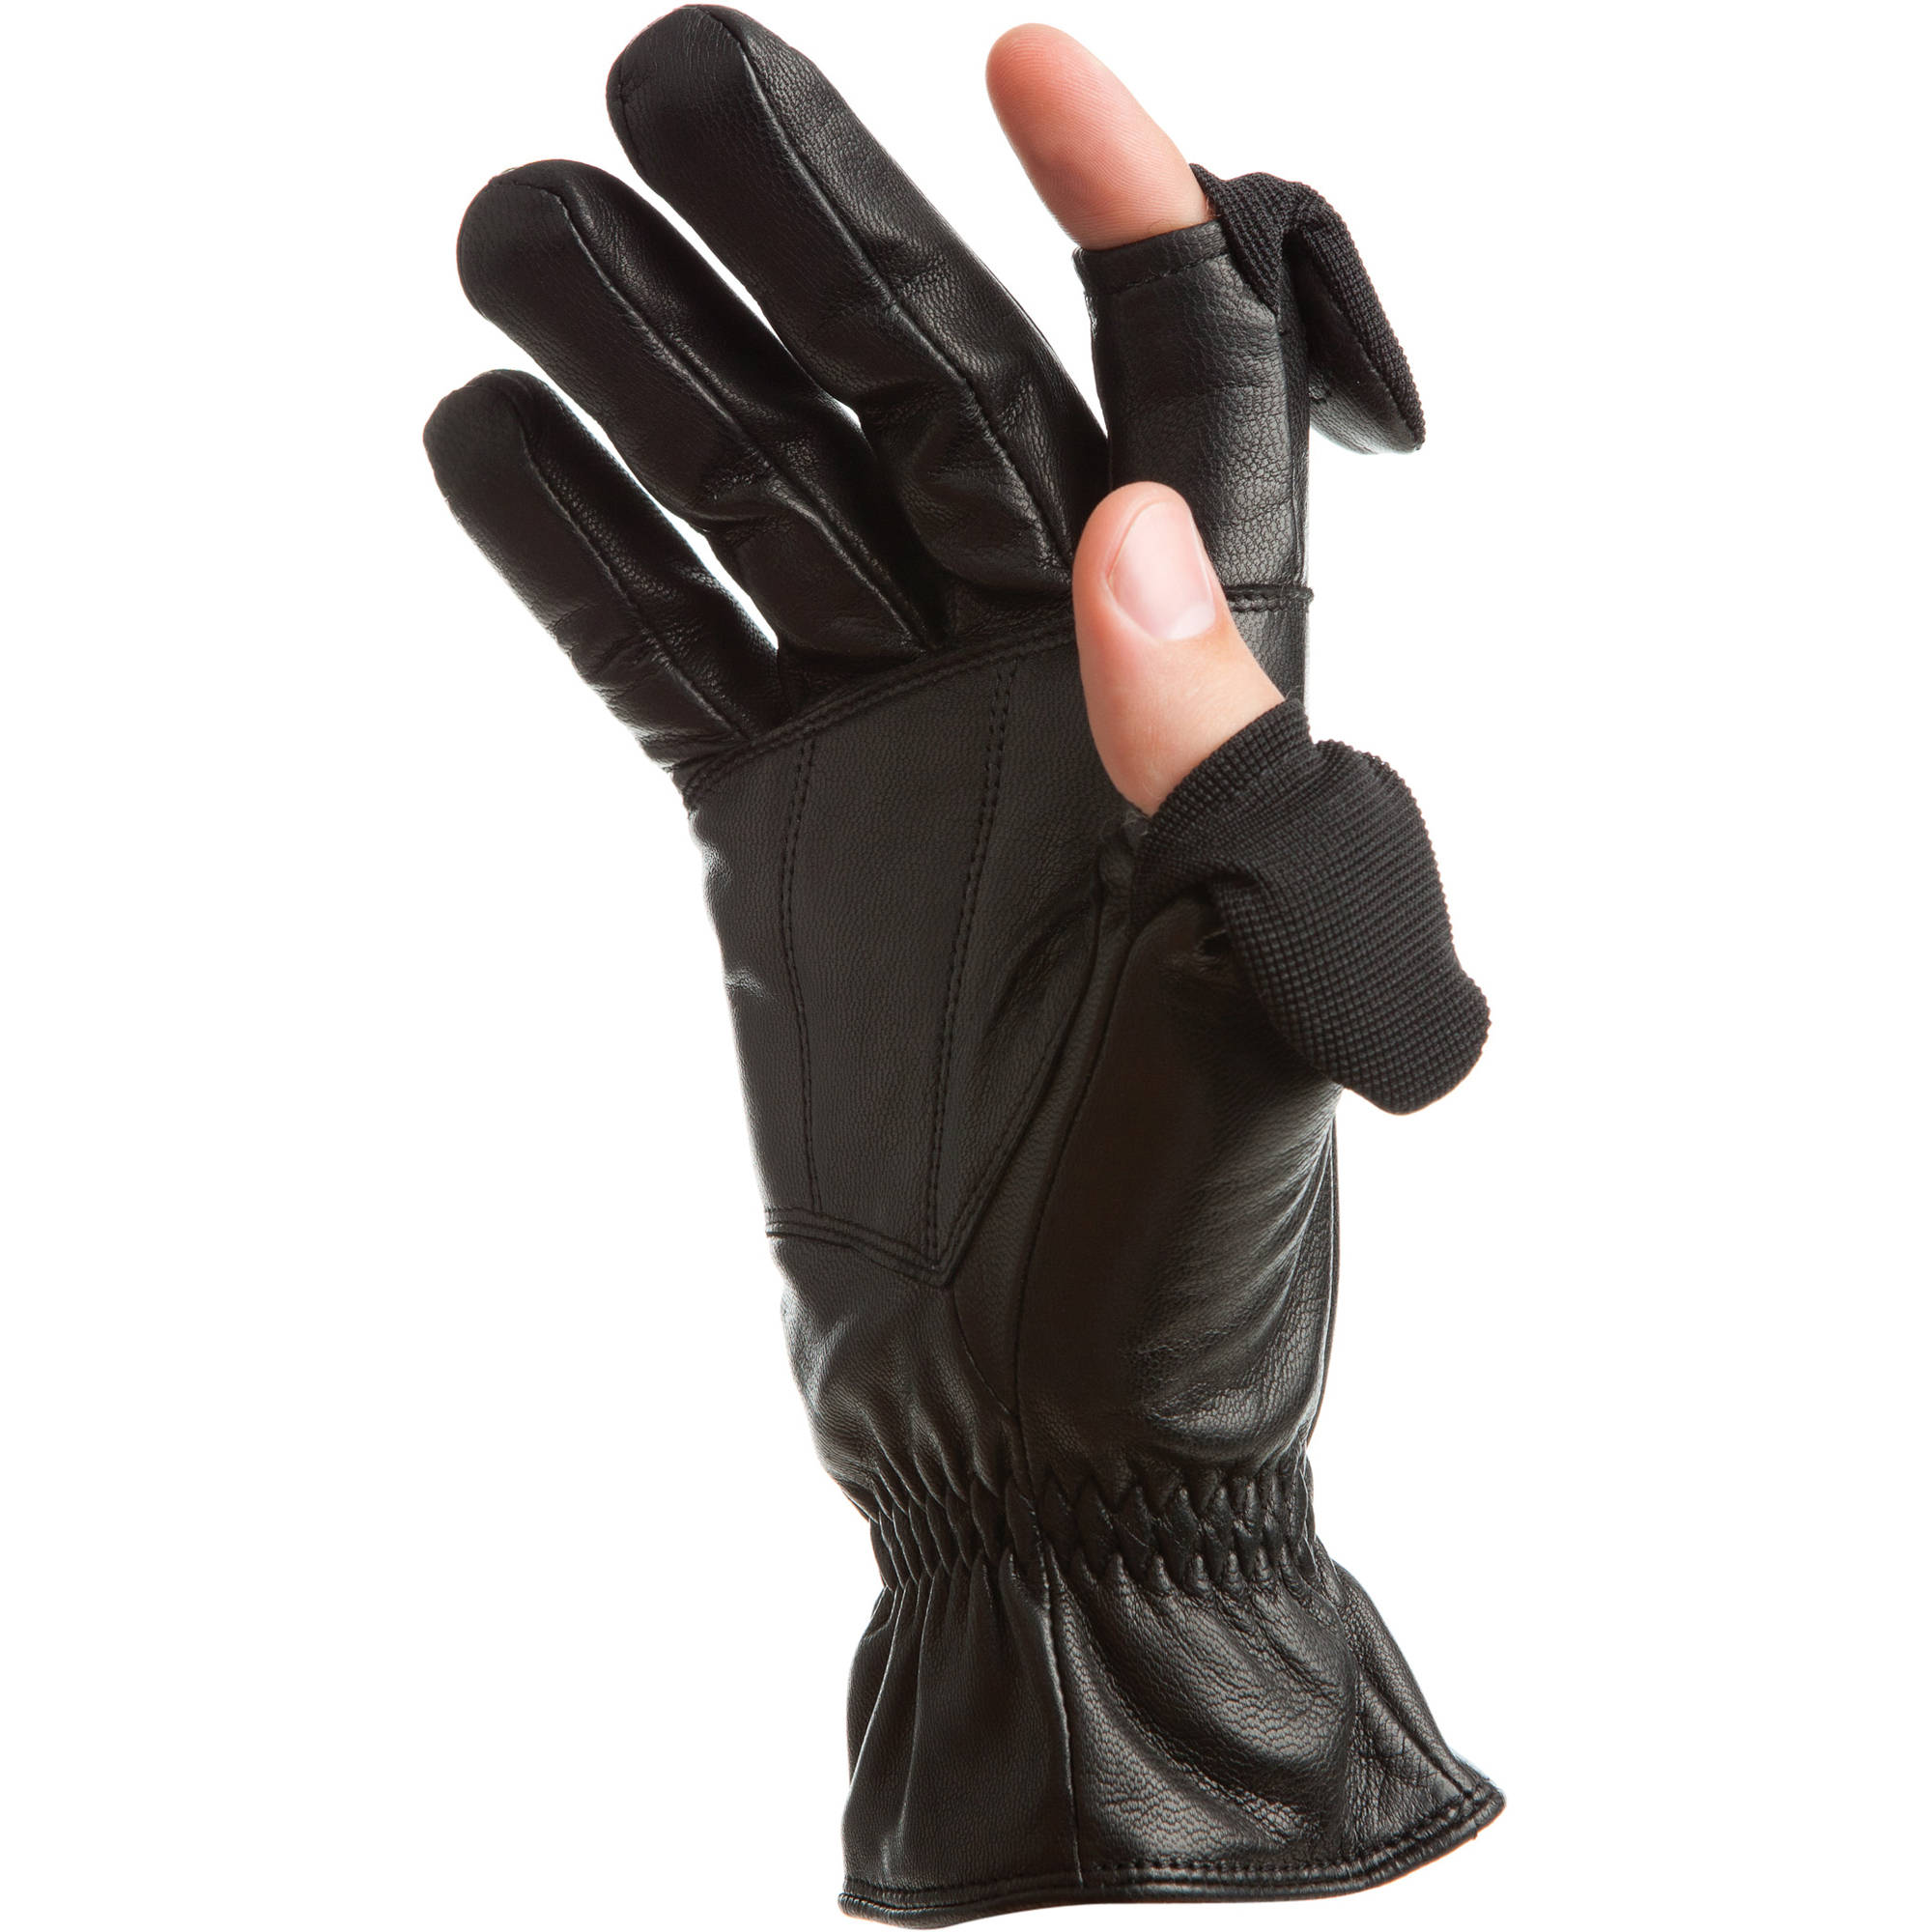 8fa3f802d35b7 Freehands Men's Leather Gloves (Large, Black) 41011ML B&H Photo